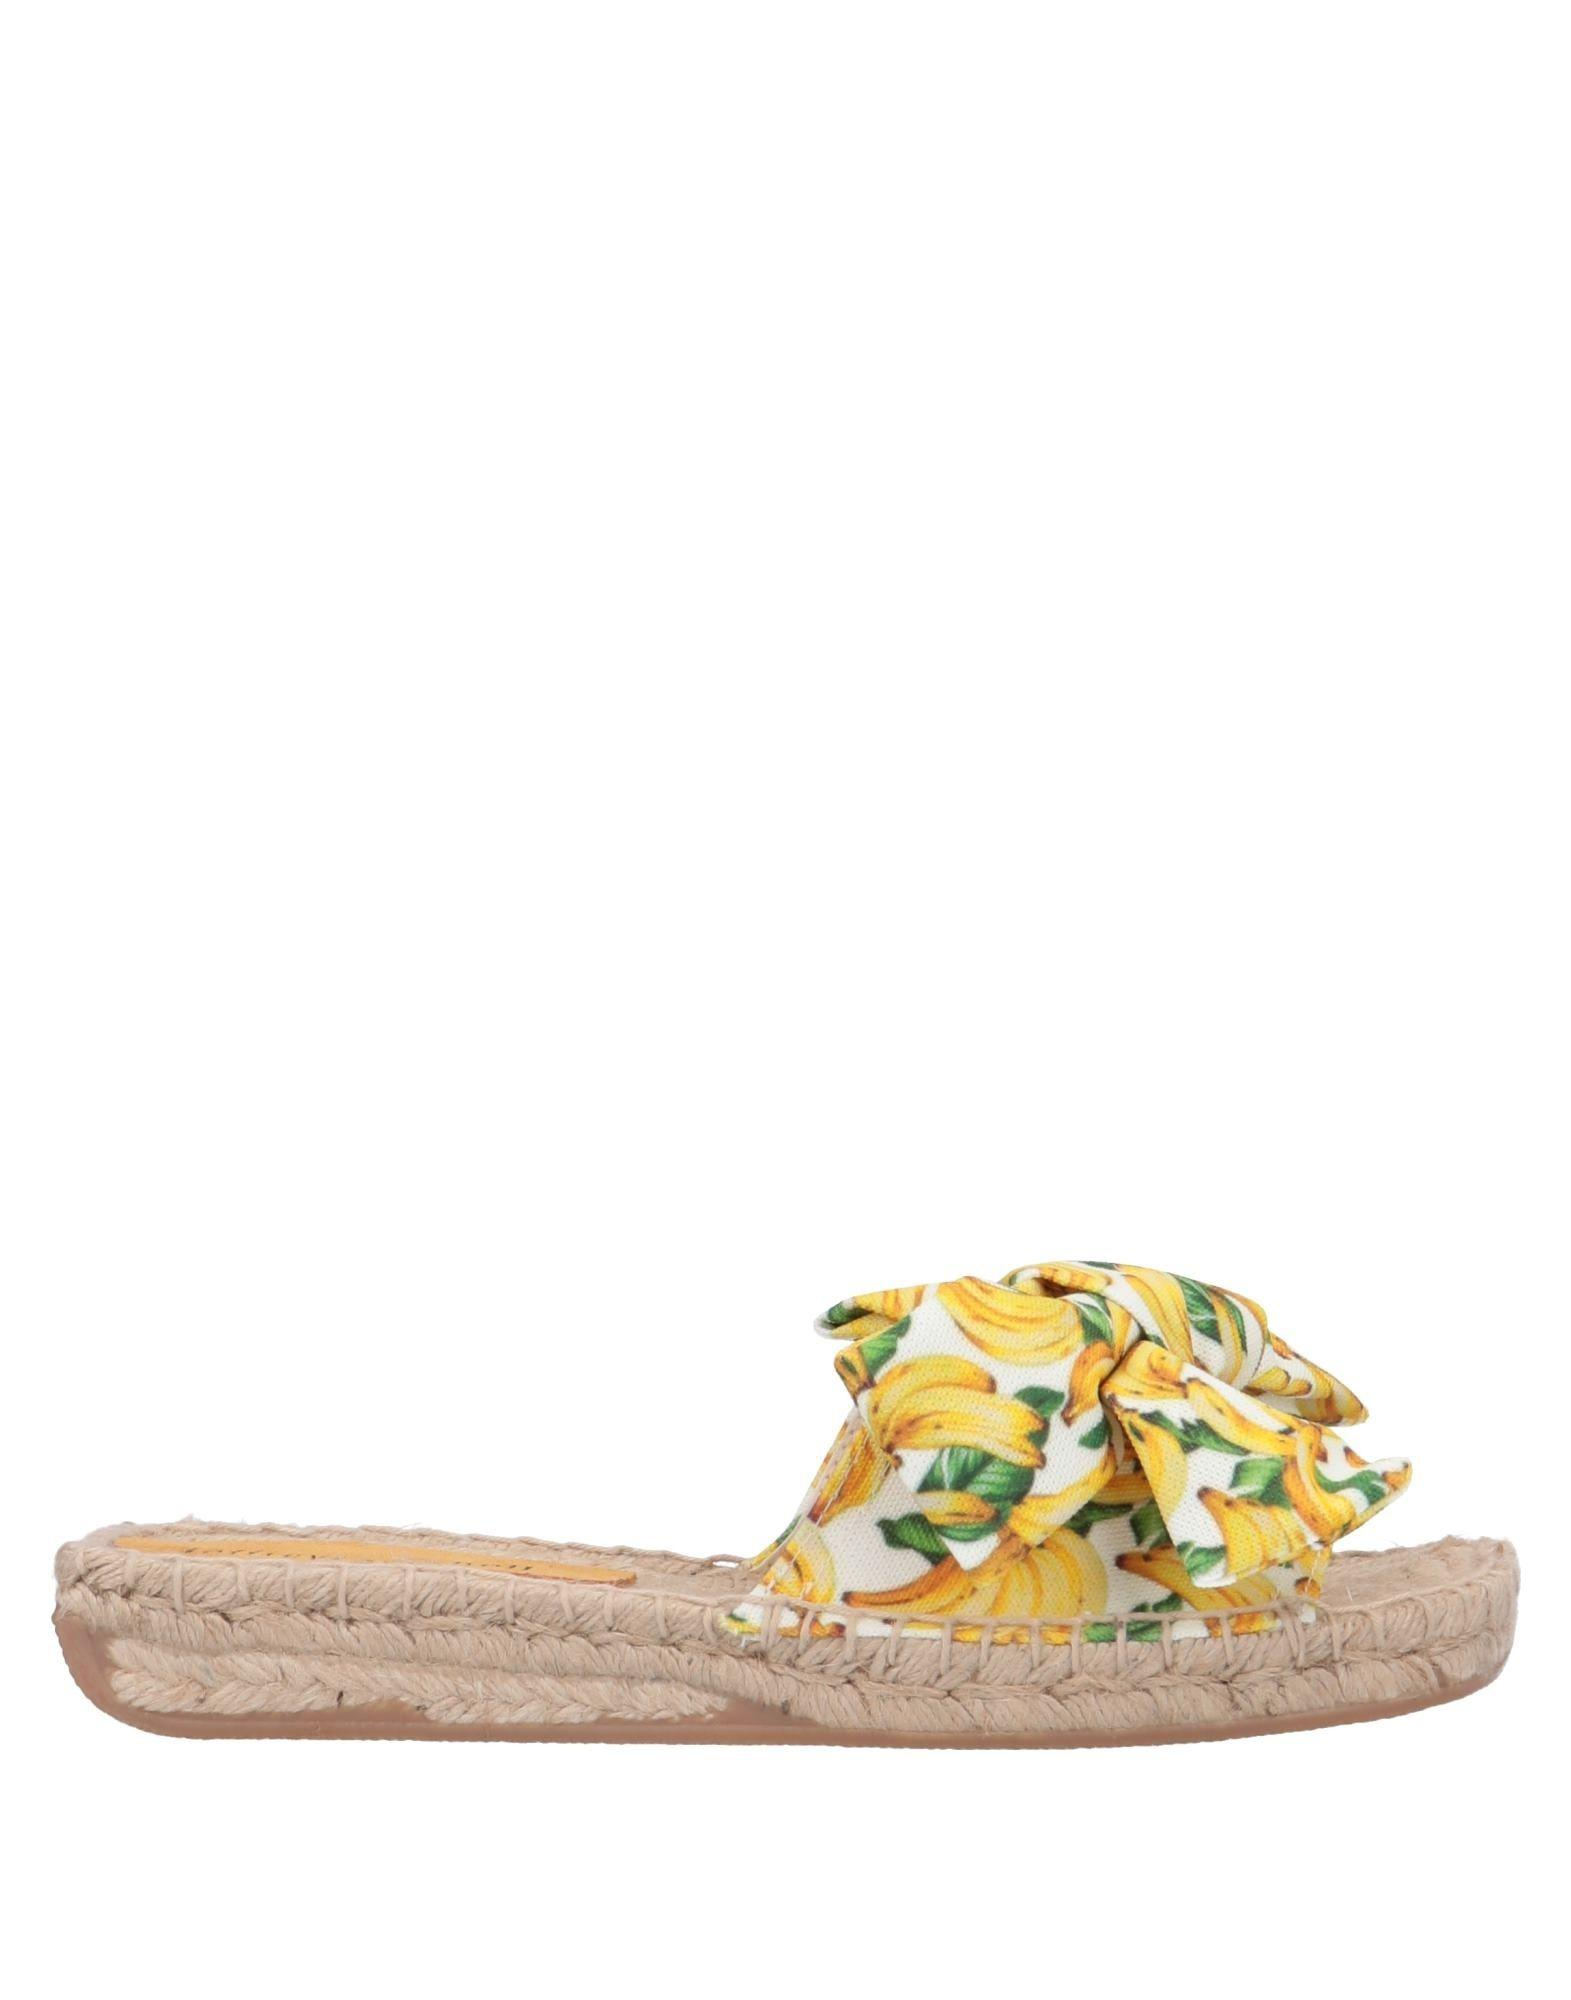 1e09d970350 Lyst - Jeffrey Campbell Sandals in Yellow